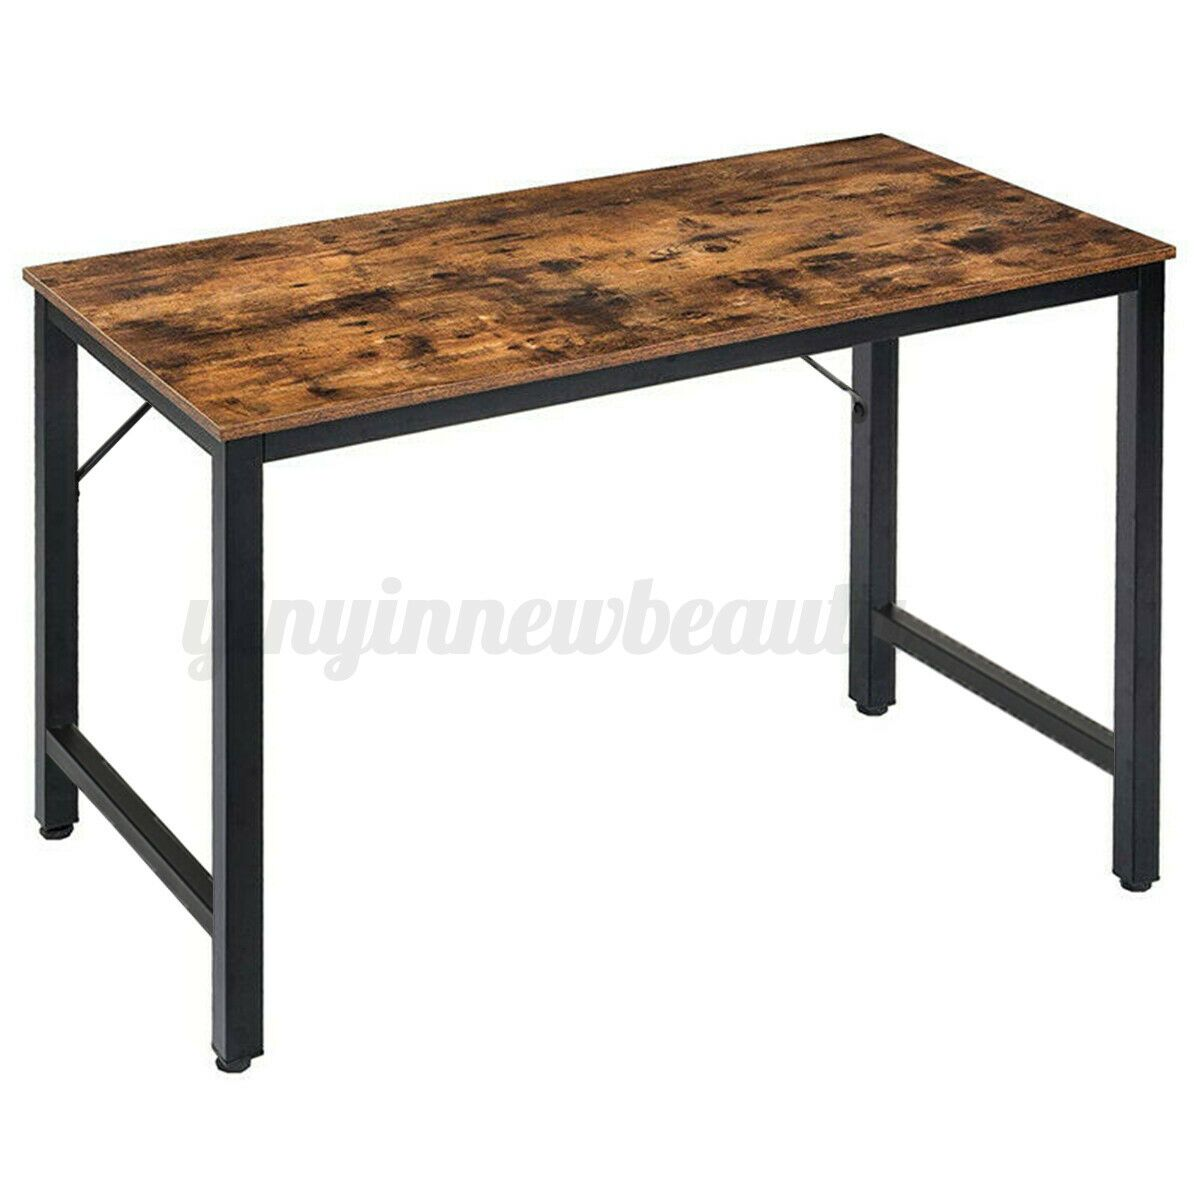 Adjustable Desk Table Storage Study Writing Gaming Computer Laptop Home Office